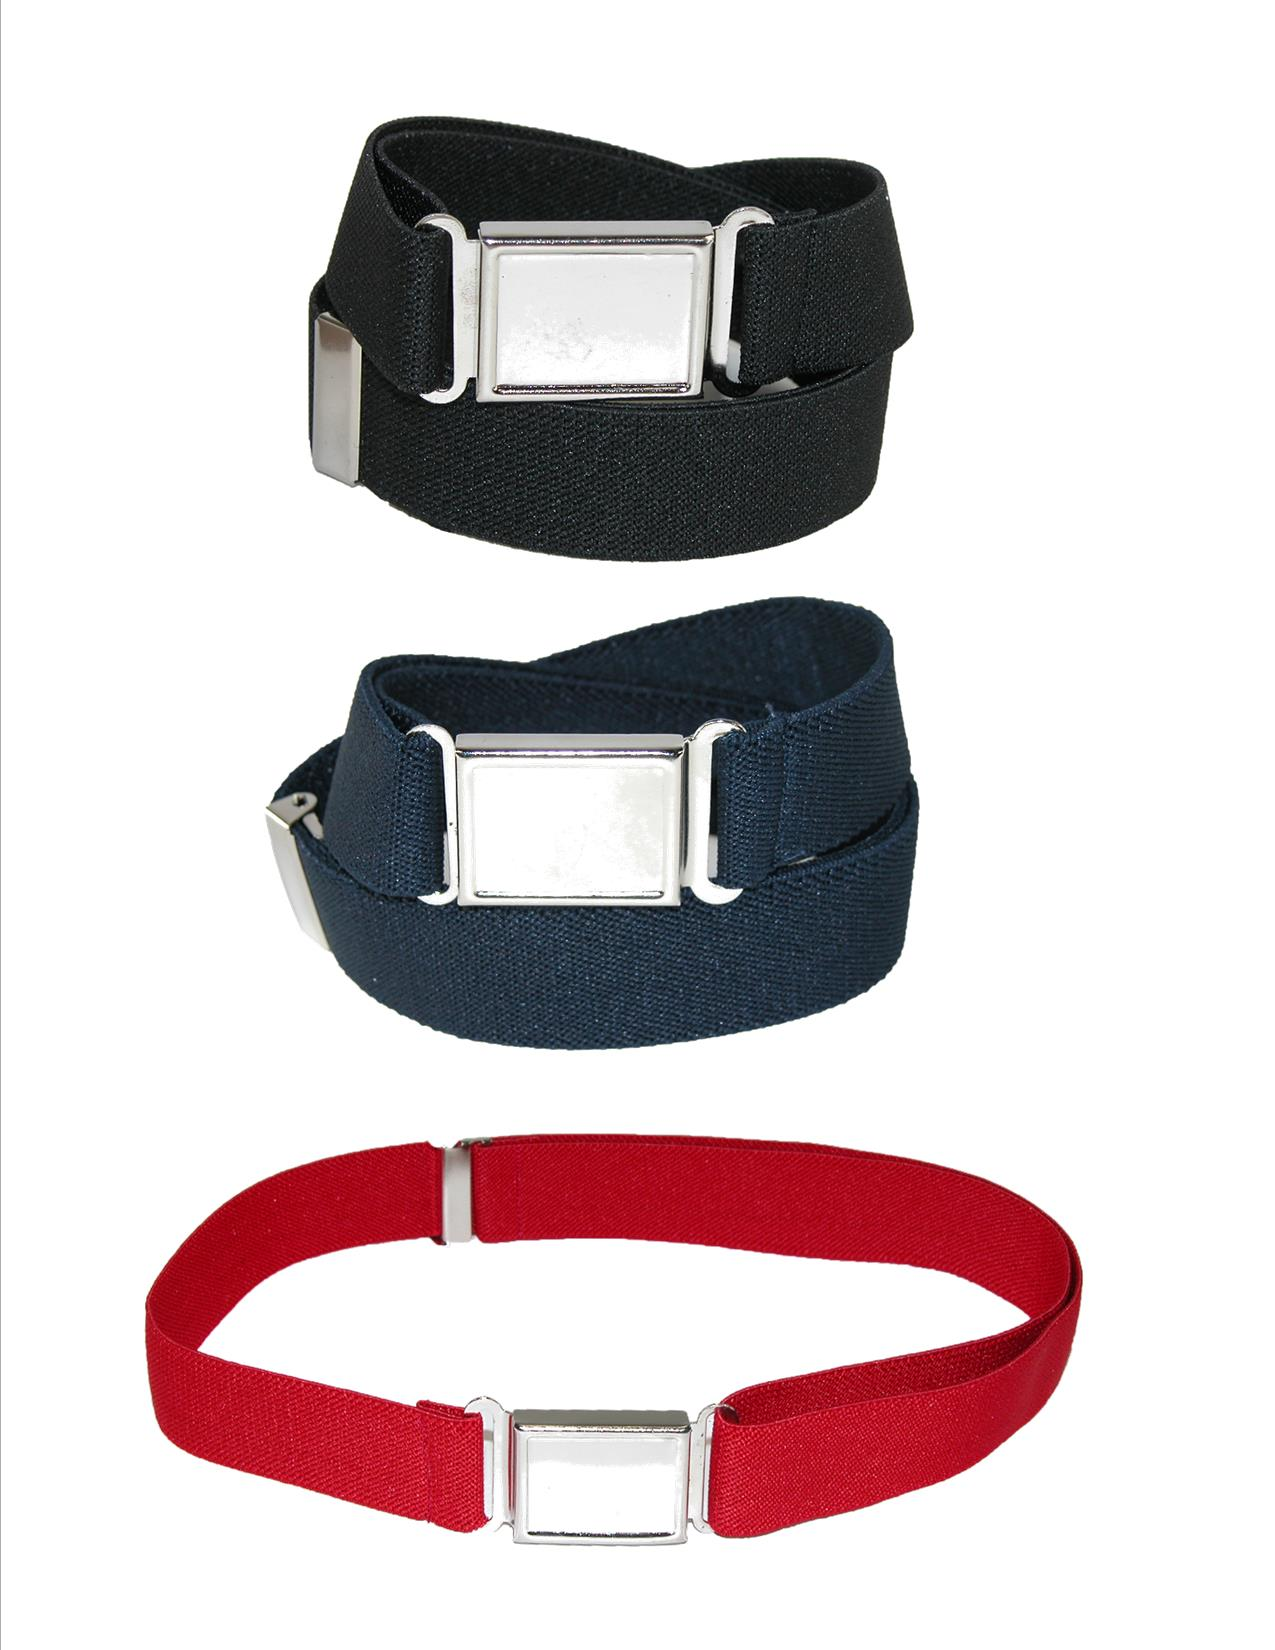 Adjustable Elastic Belt with Magnet Belt Buckle Jackster Boys Belt